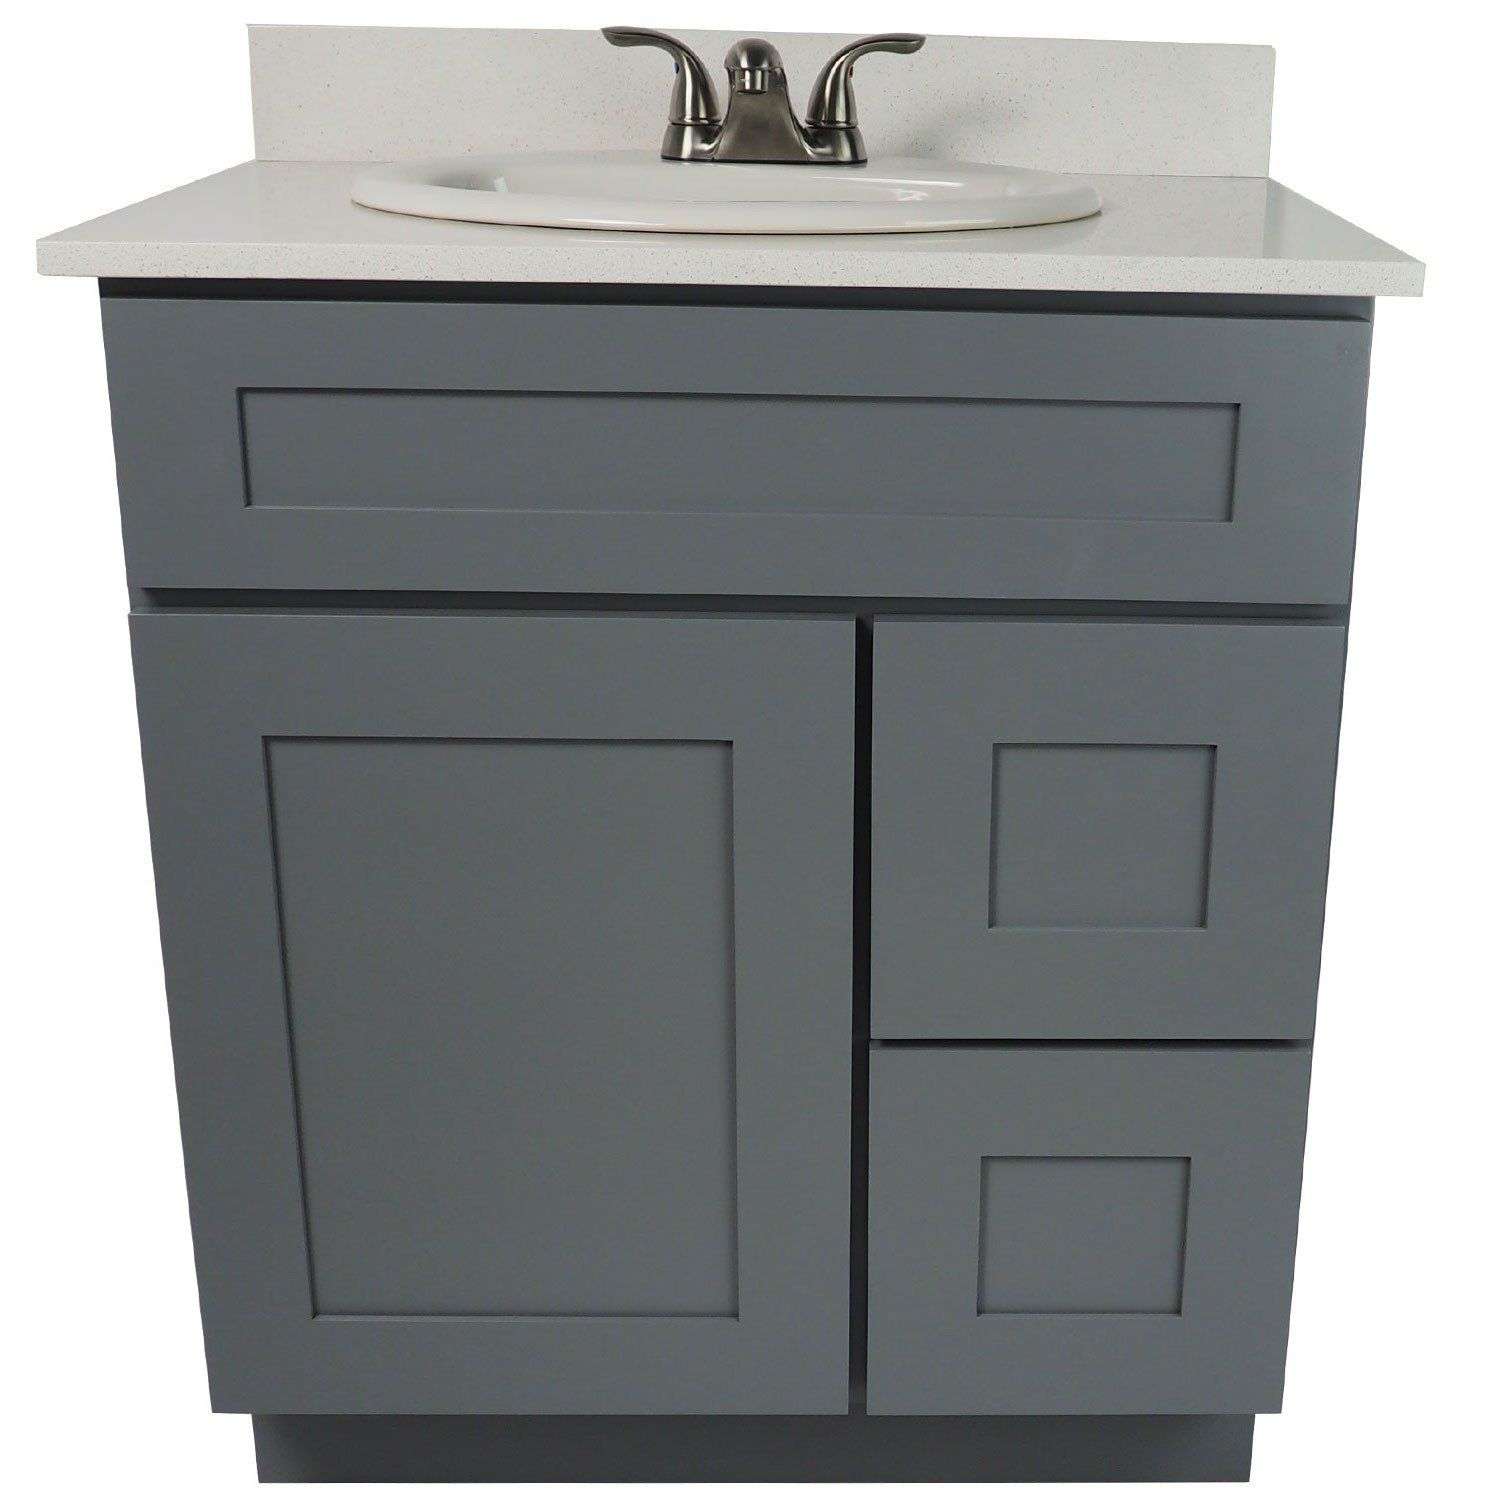 Image Of  Inch Bathroom Vanity Single Sink Cabinet in Shaker Gray with Soft Close Drawers u Door